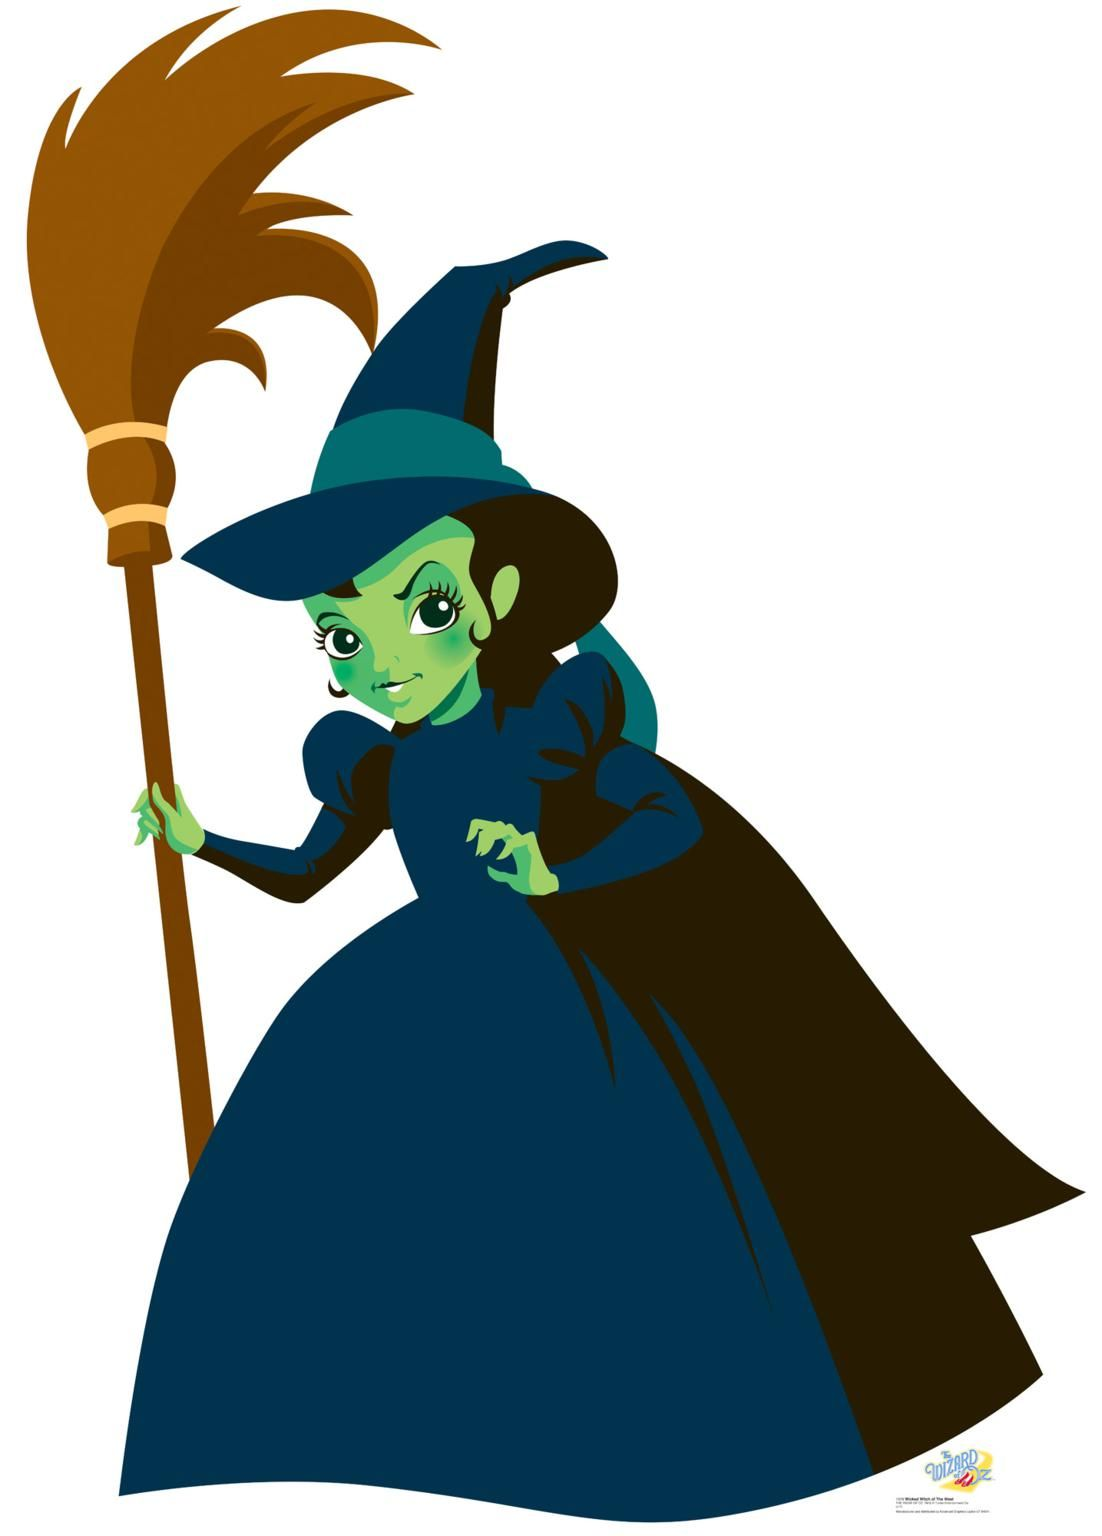 wicked witch of the west kids wizard of oz 1078 wizard of oz rh pinterest com I'm the Wicked Witch of the West OH Honey Everything Clip Art of the West Wicked Witch Legs